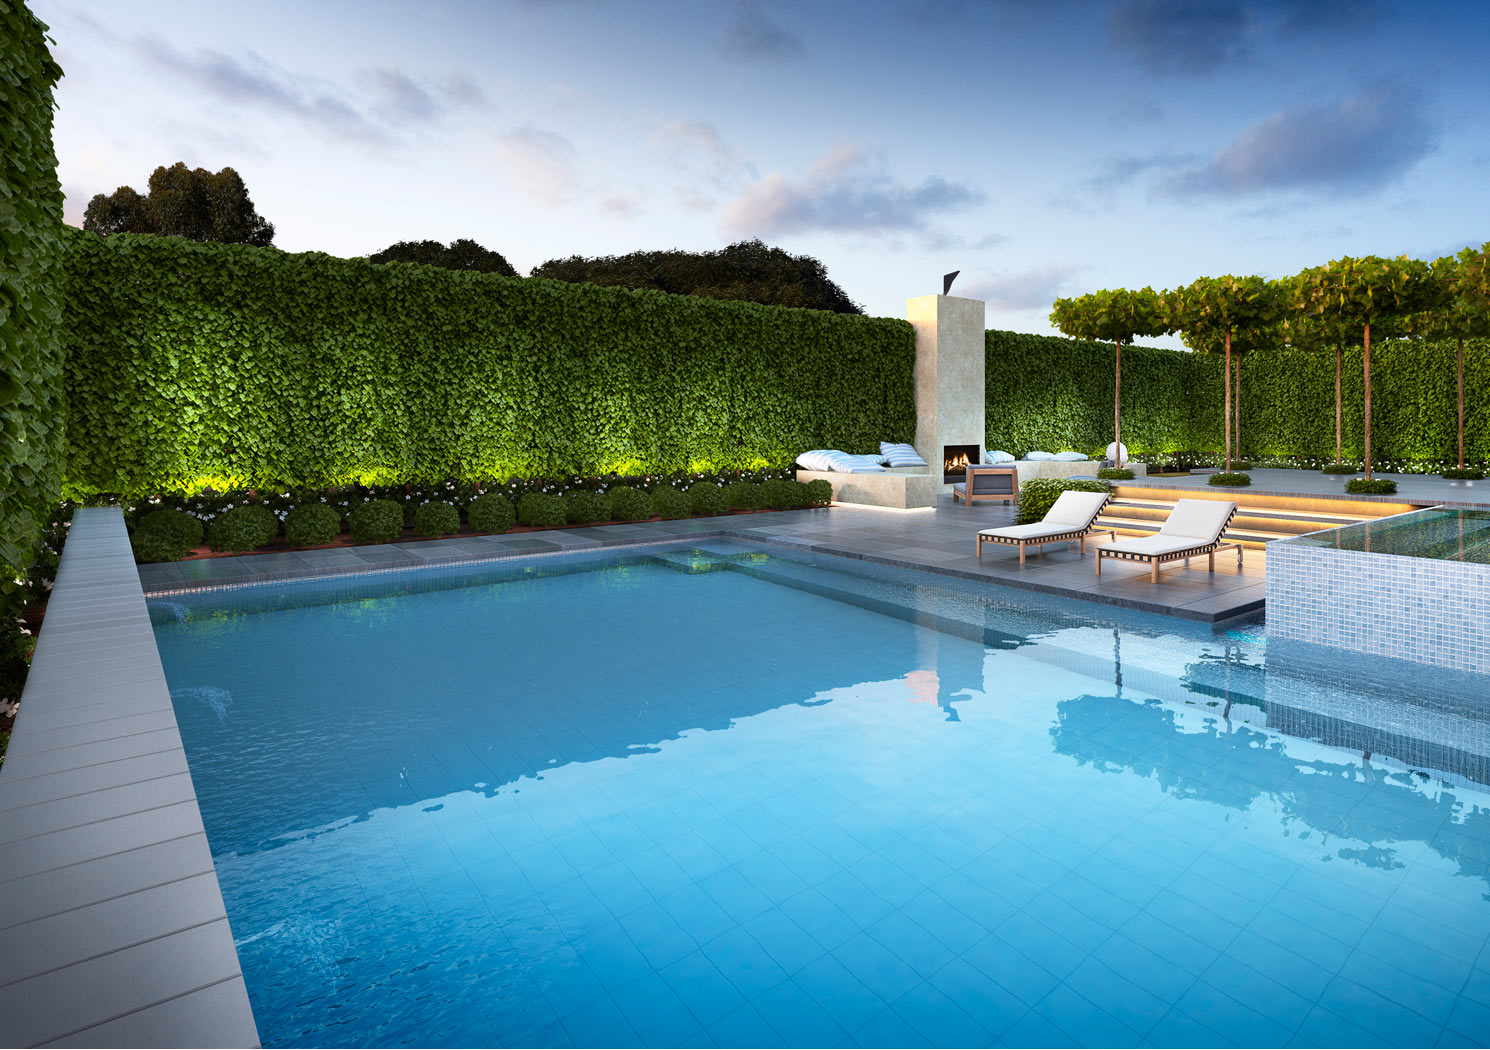 Landscape garden designer melbourne nathan burkett design for Design and landscape